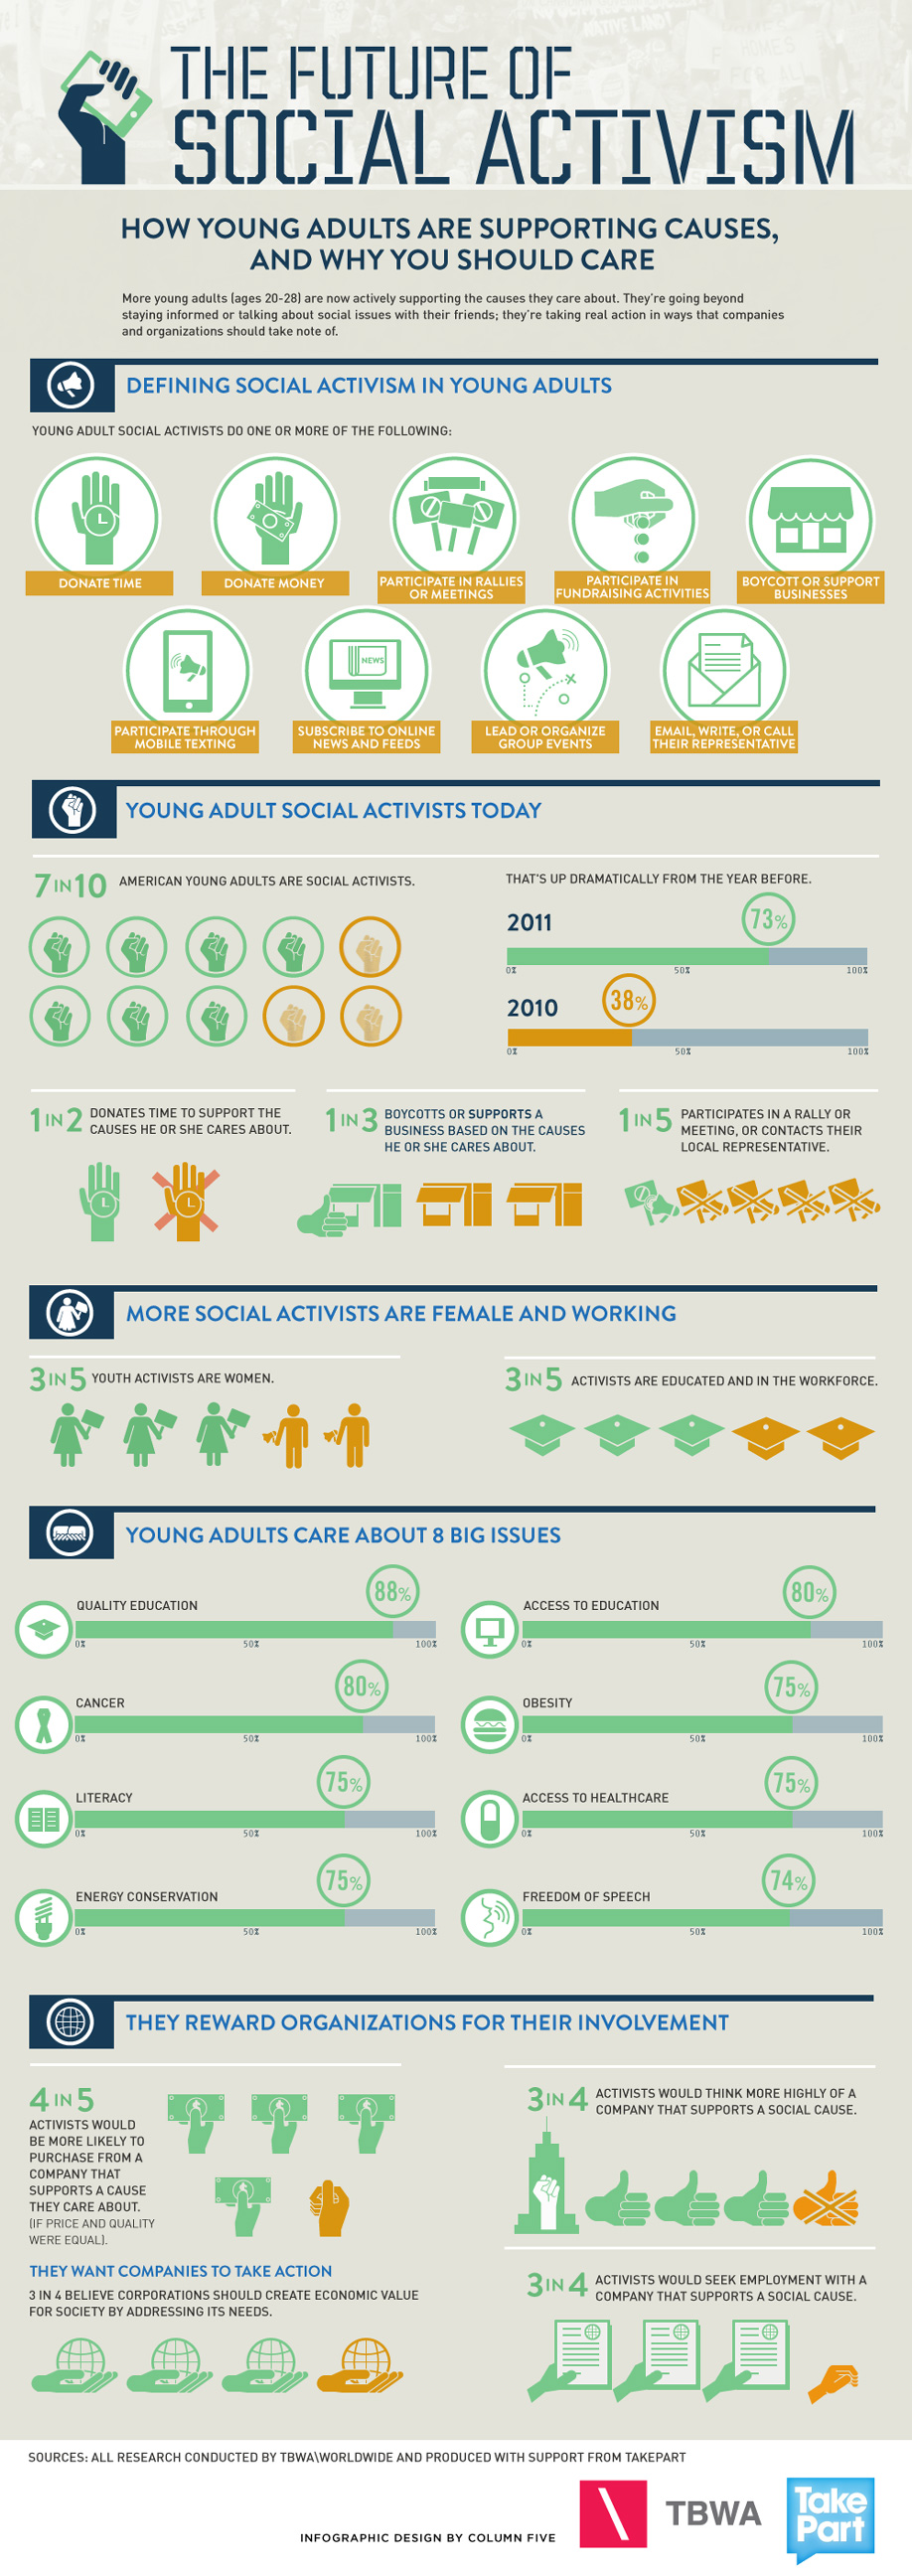 Infographic entitled The Future of Social Activism describing how young adults are supporting causes through traditional means like donations and marches and untraditional means like social media. Produced by Take Part.